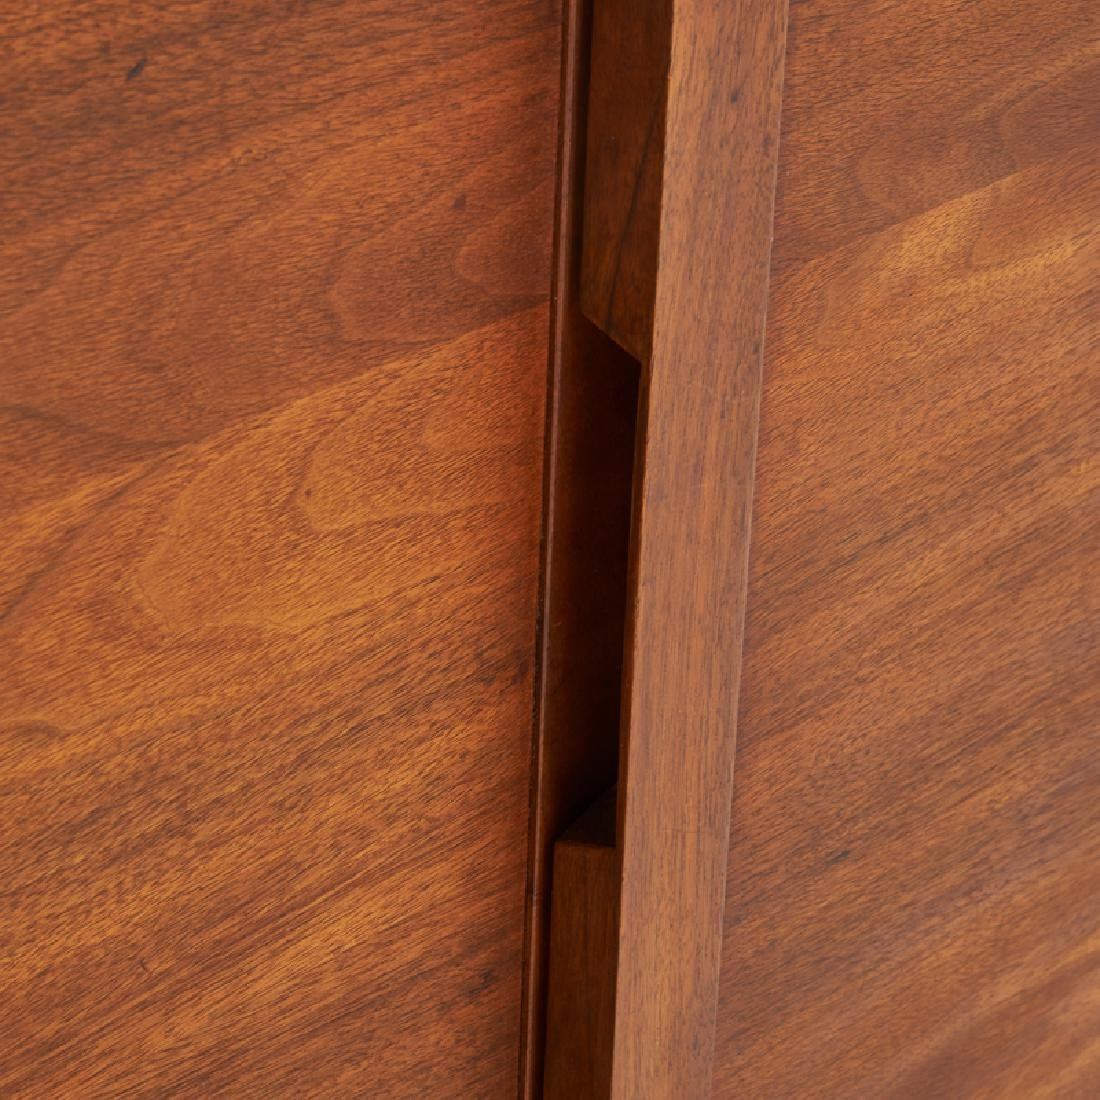 GEORGE NAKASHIMA Sliding Door Cabinet - 7